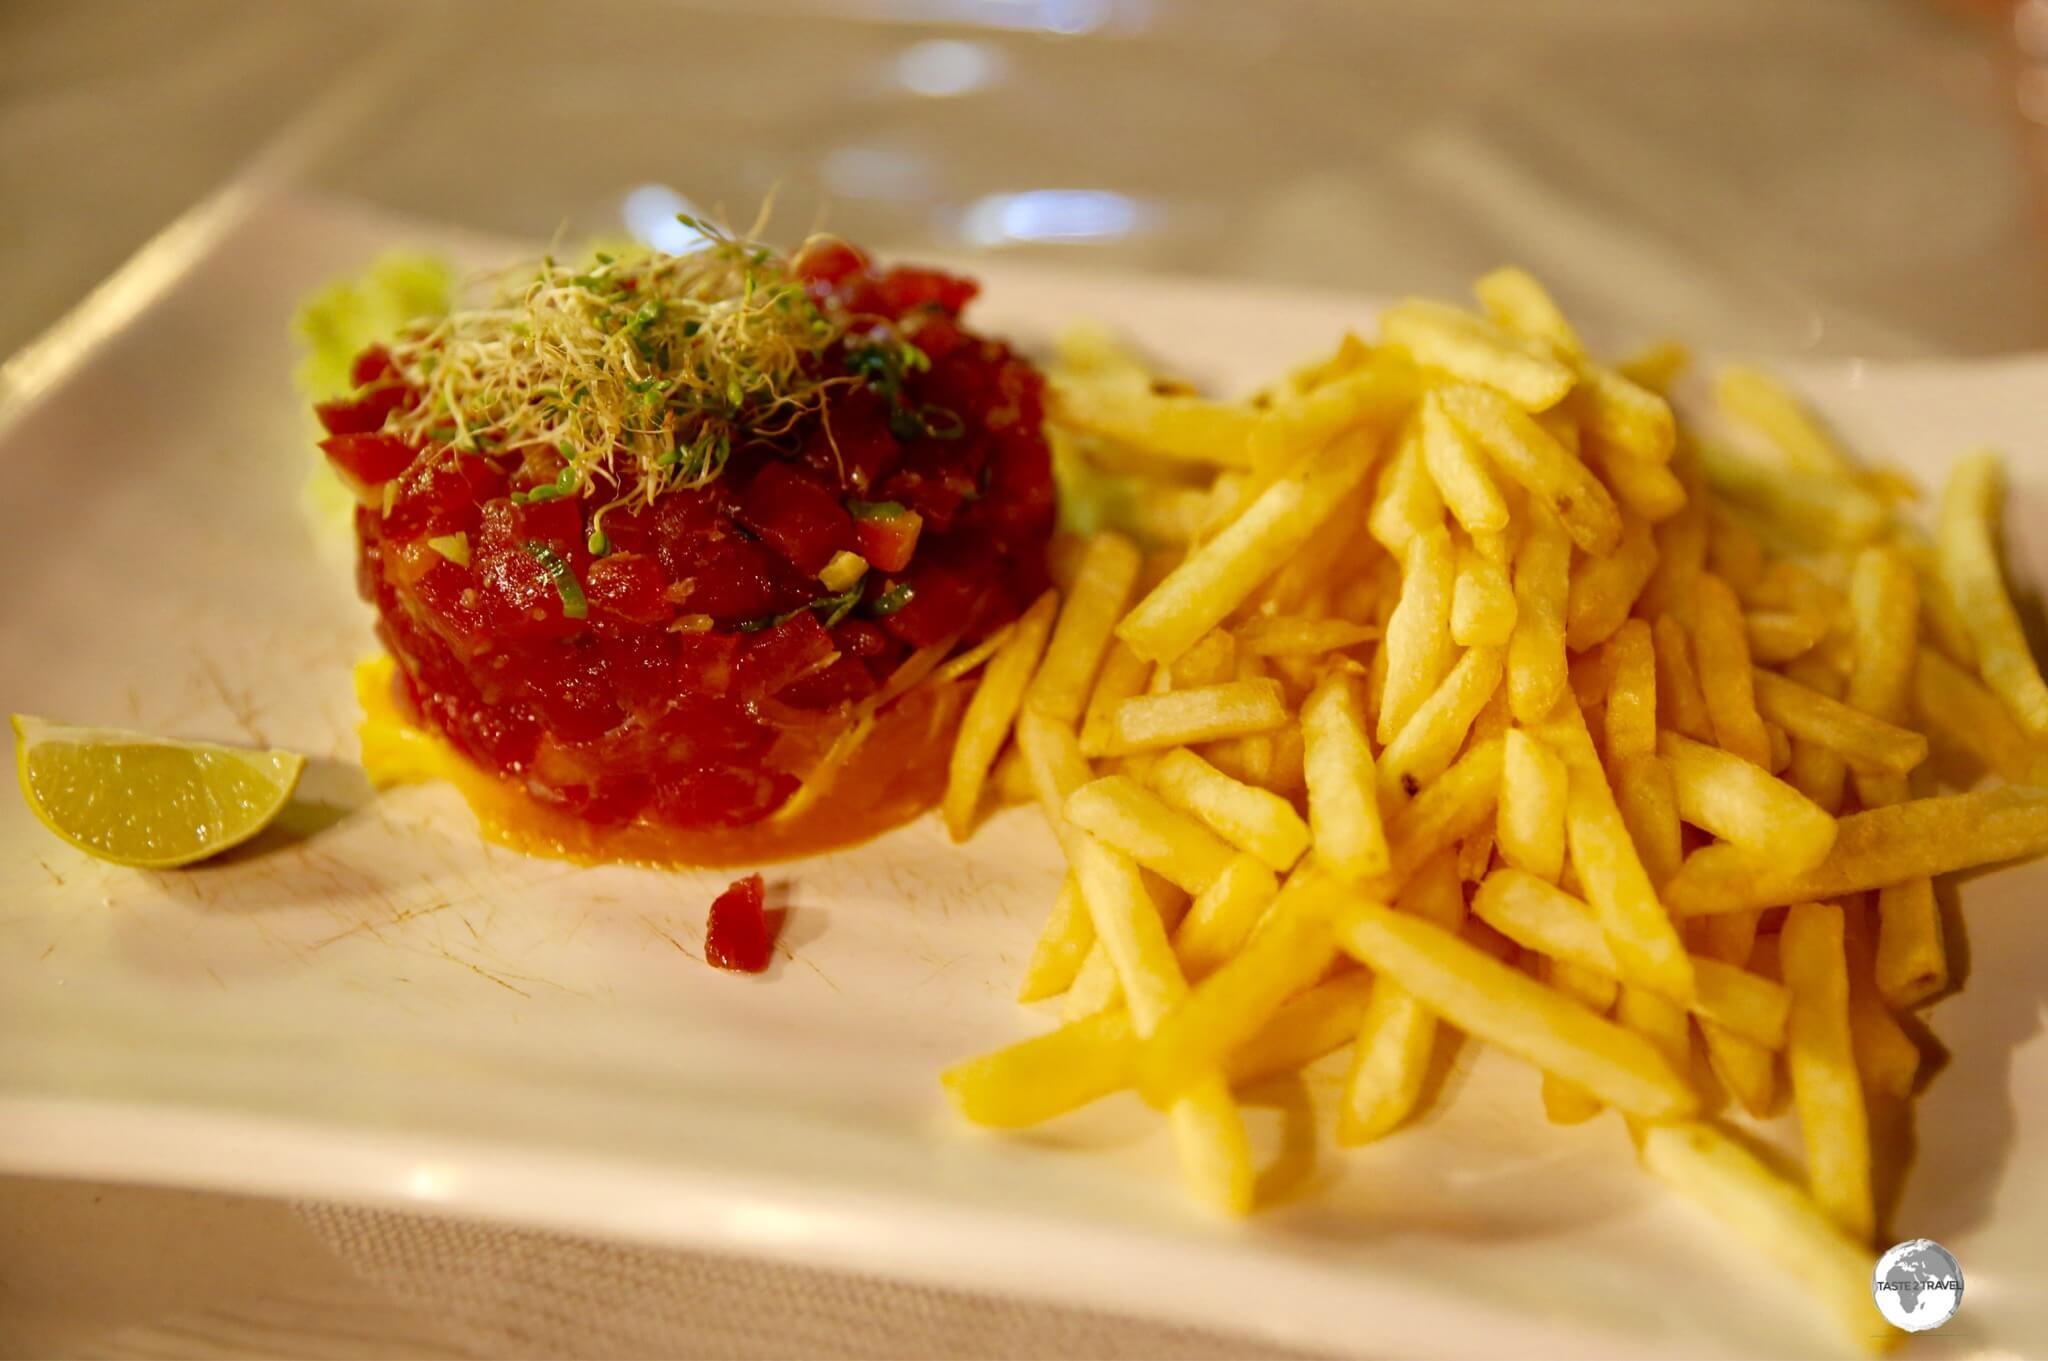 Tuna Tartare and French Fries from a Roulotte.